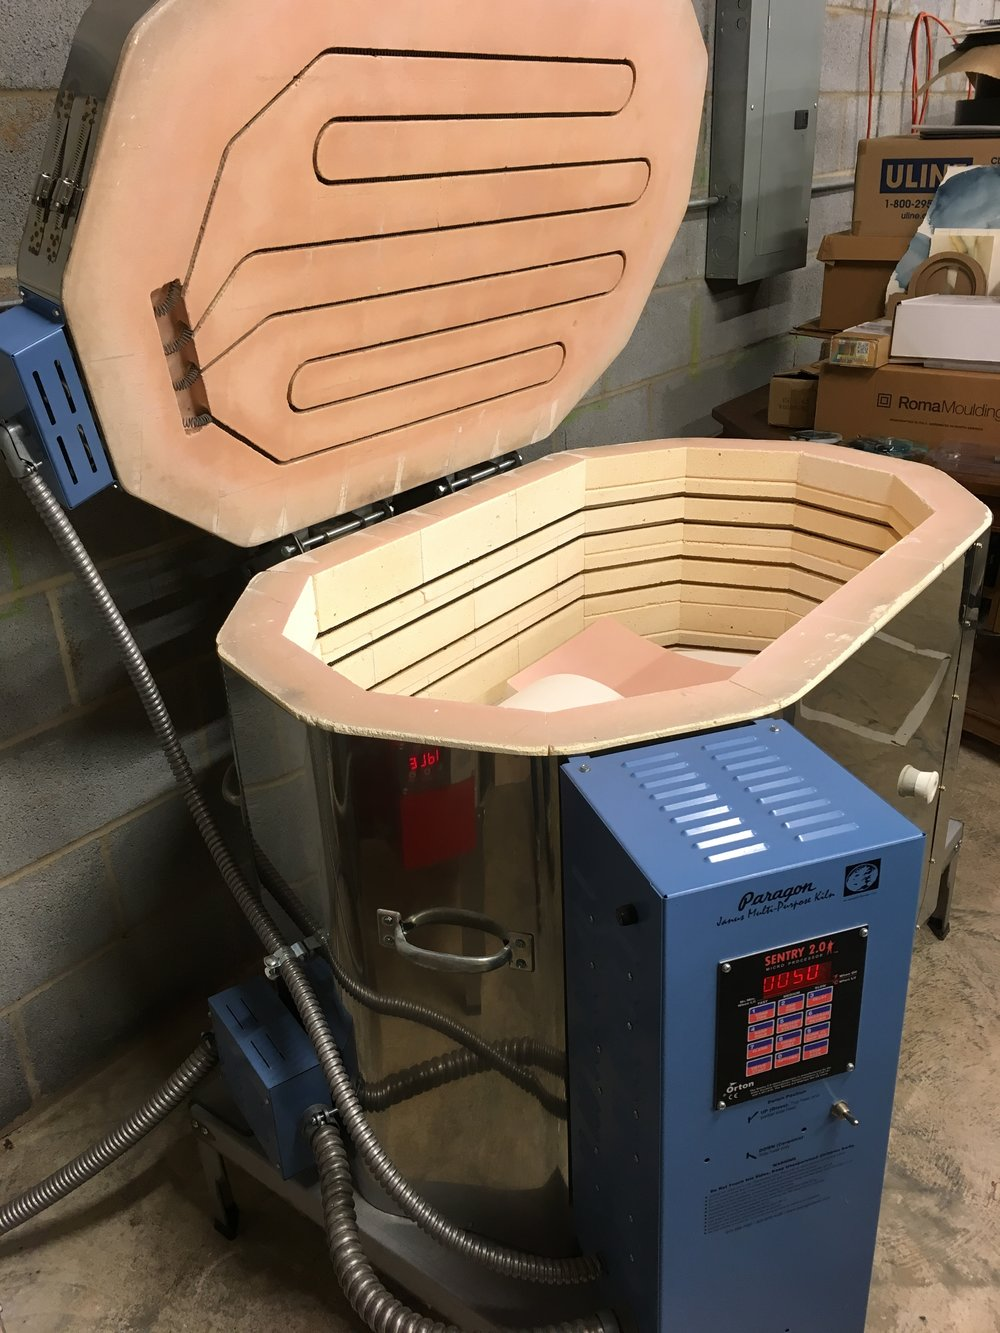 This is my biggest electric kiln. (Similar to kilns used in pottery, but shelves and heat/firing schedules are different.) I LITERALLY use the heat and gravity to mix my colors:)